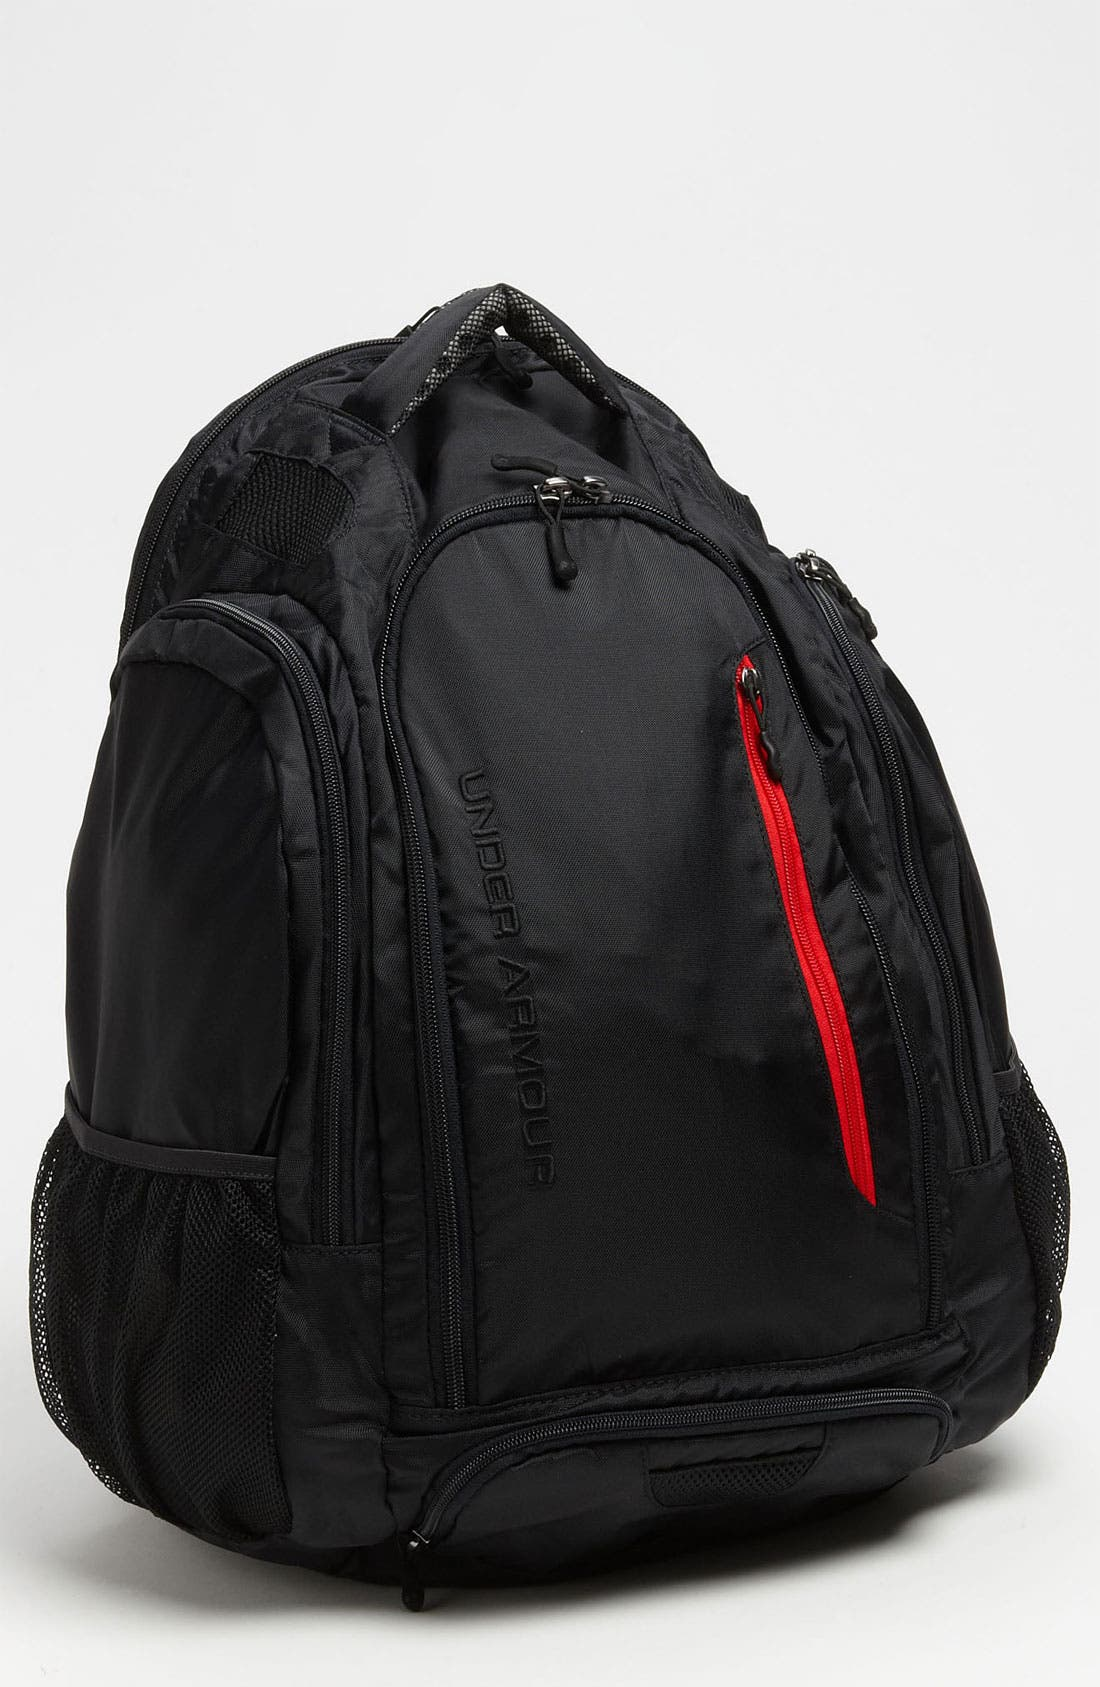 Alternate Image 1 Selected - Under Armour 'Innovate' Backpack